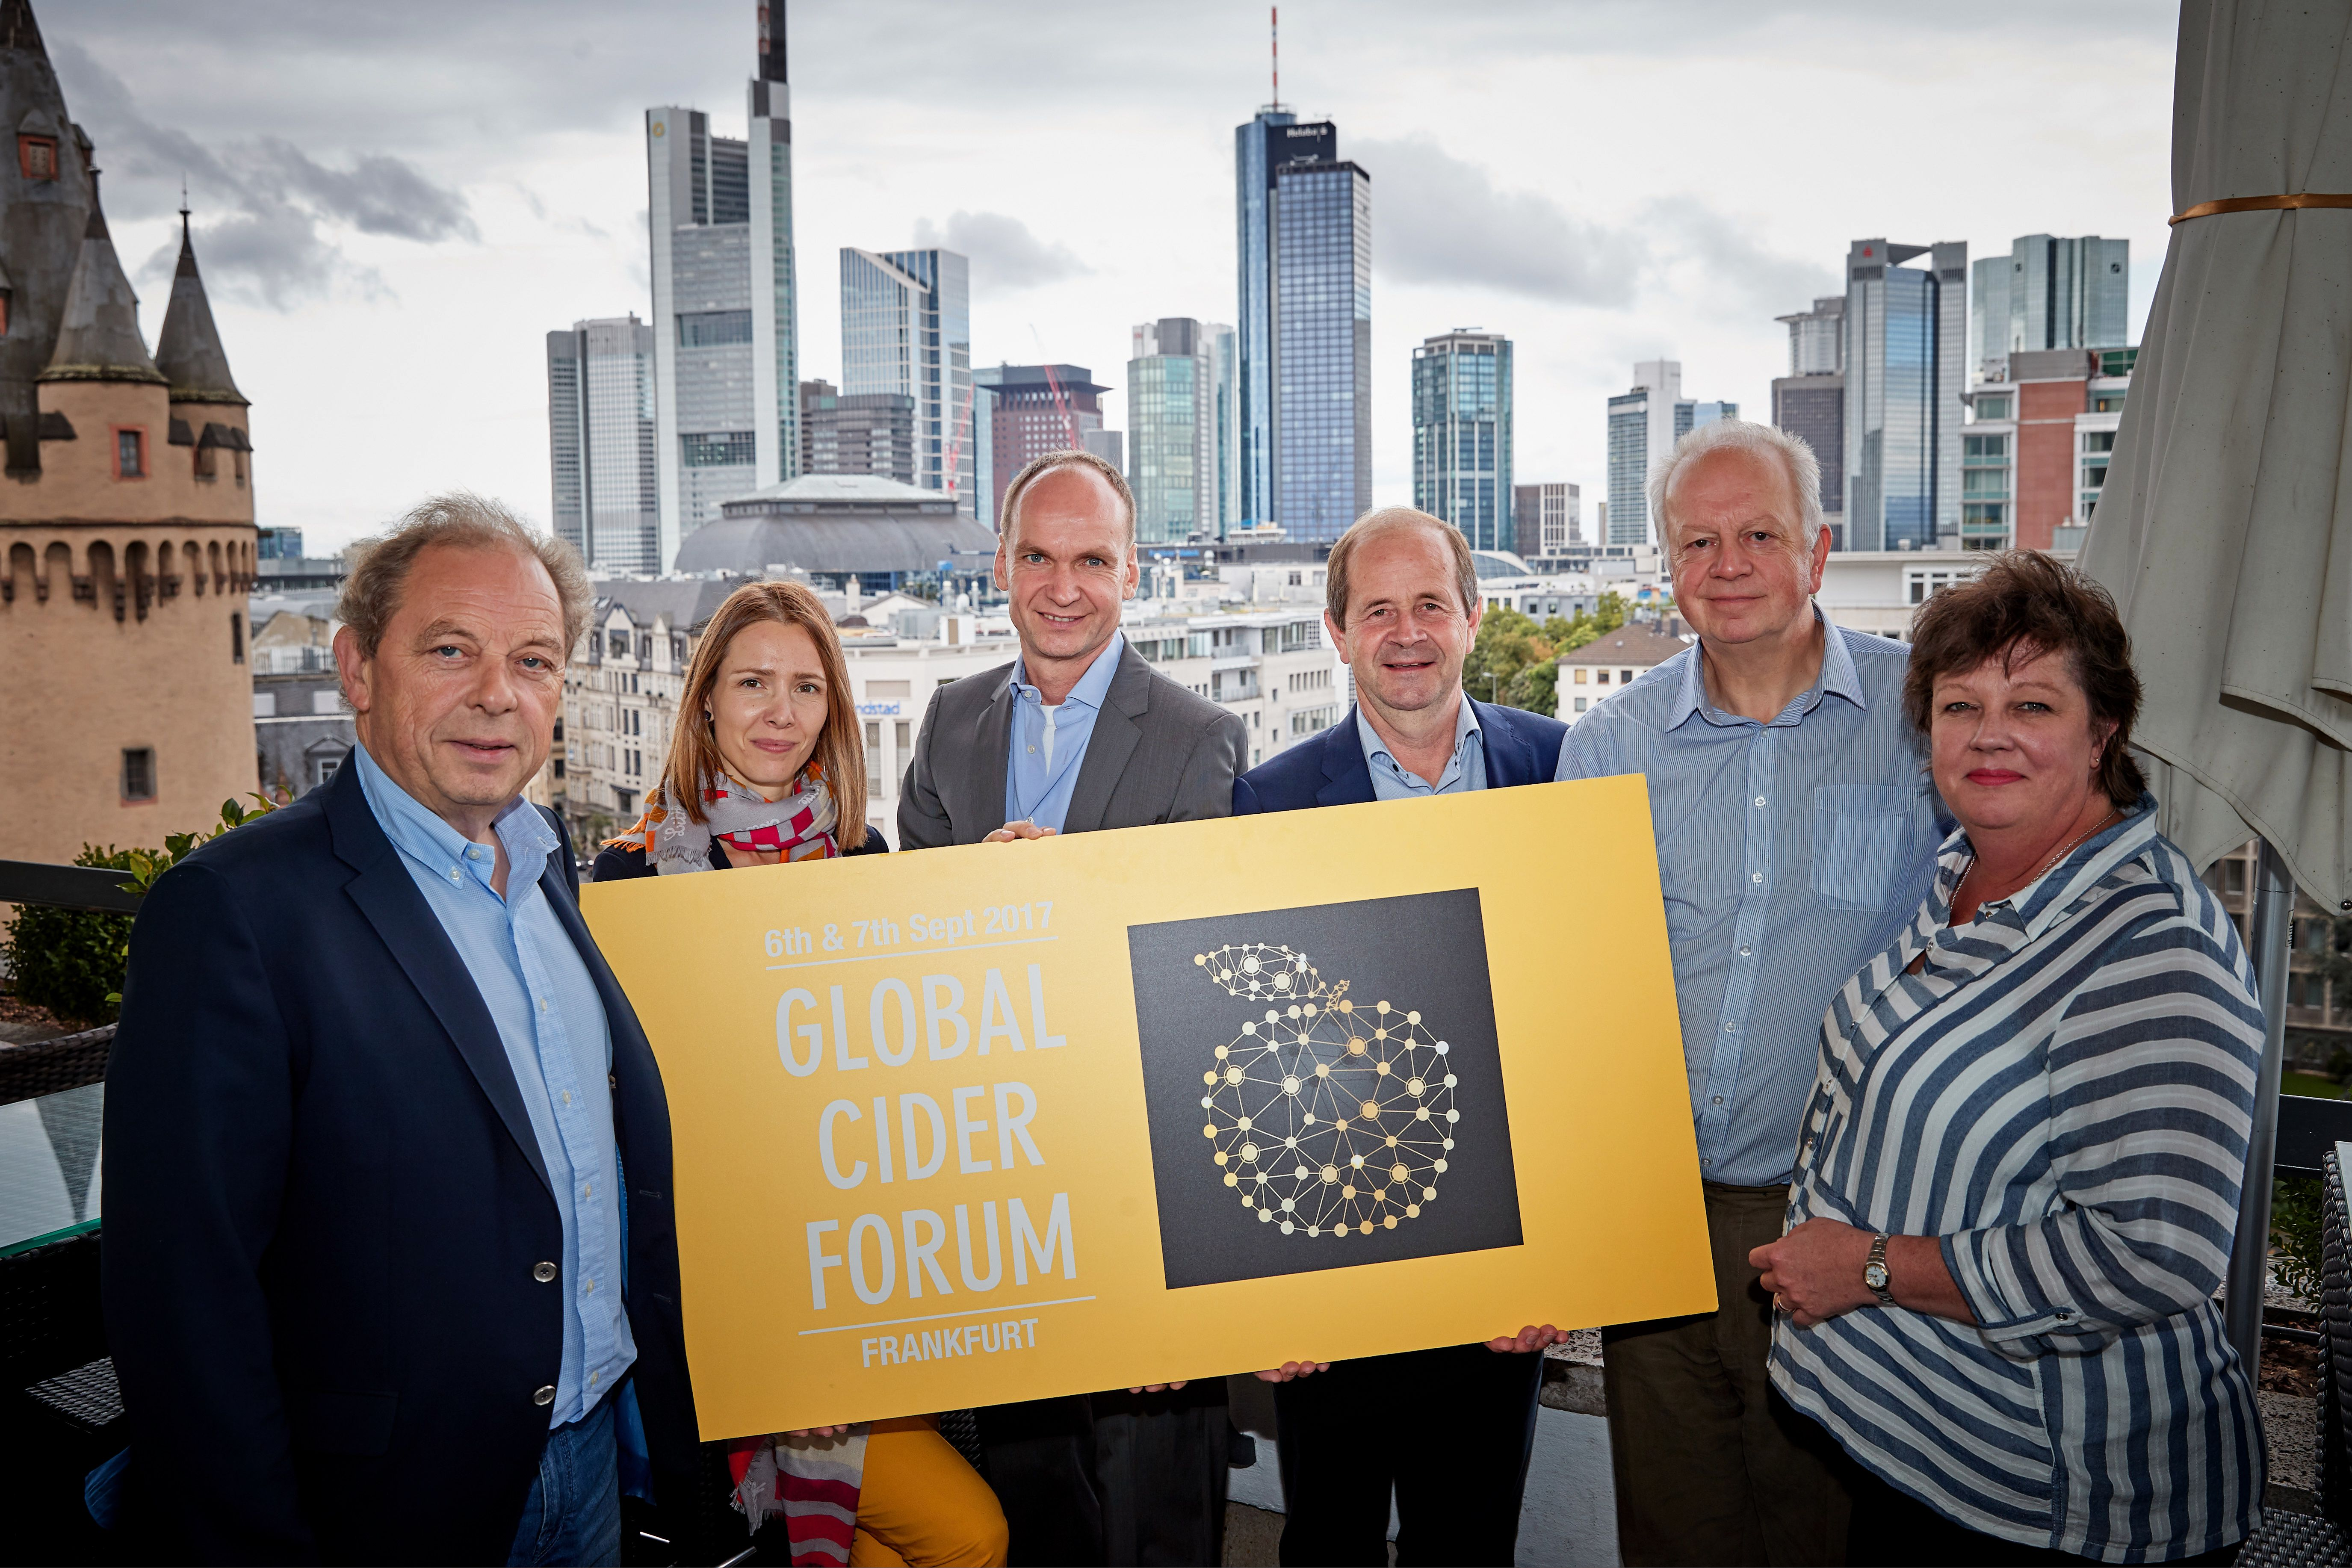 Das Organisationskomitee des Global Cider Forums in Frankfurt